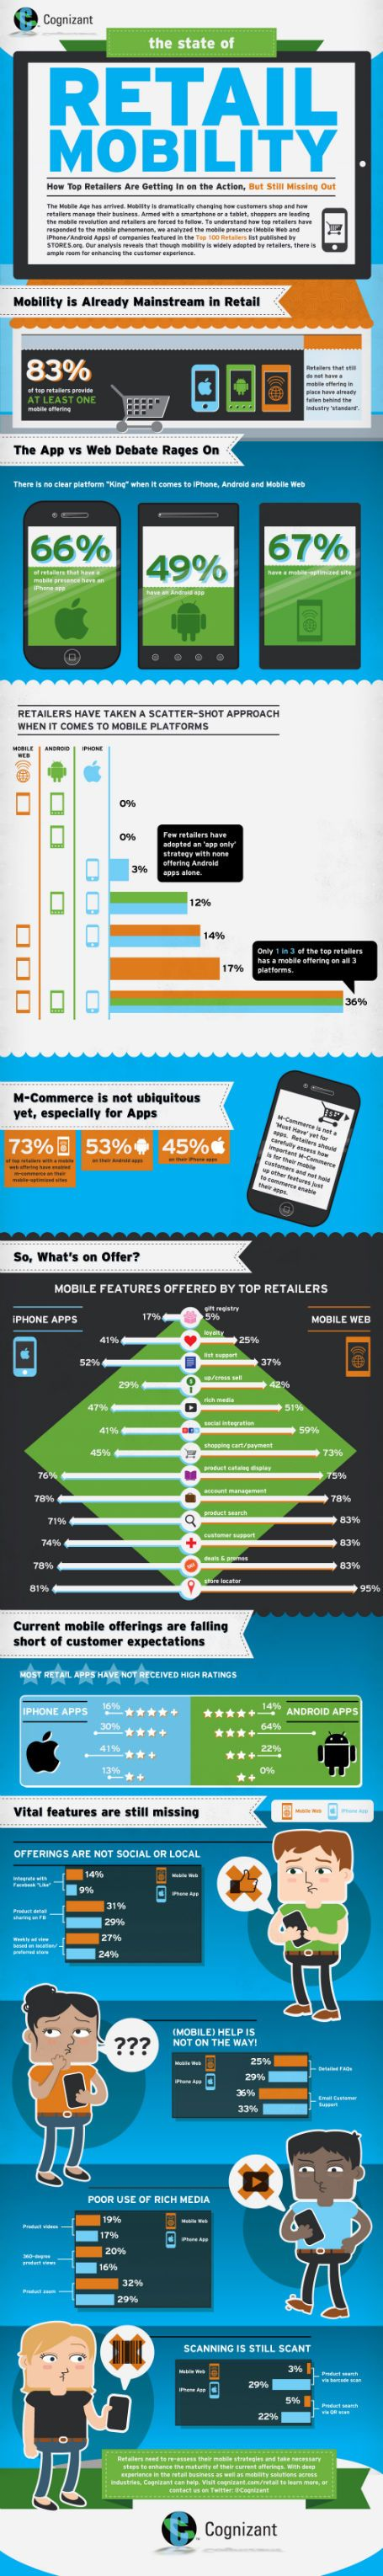 Cognizant analyzed the mobile web and app offerings of the top 100 retailers. Here is what we found about the current state of mobility in retail (infographic).: Mobile App, Info Graphic, Retail Infographic, Top Retailer, Business Infographic, Mobility Infographic